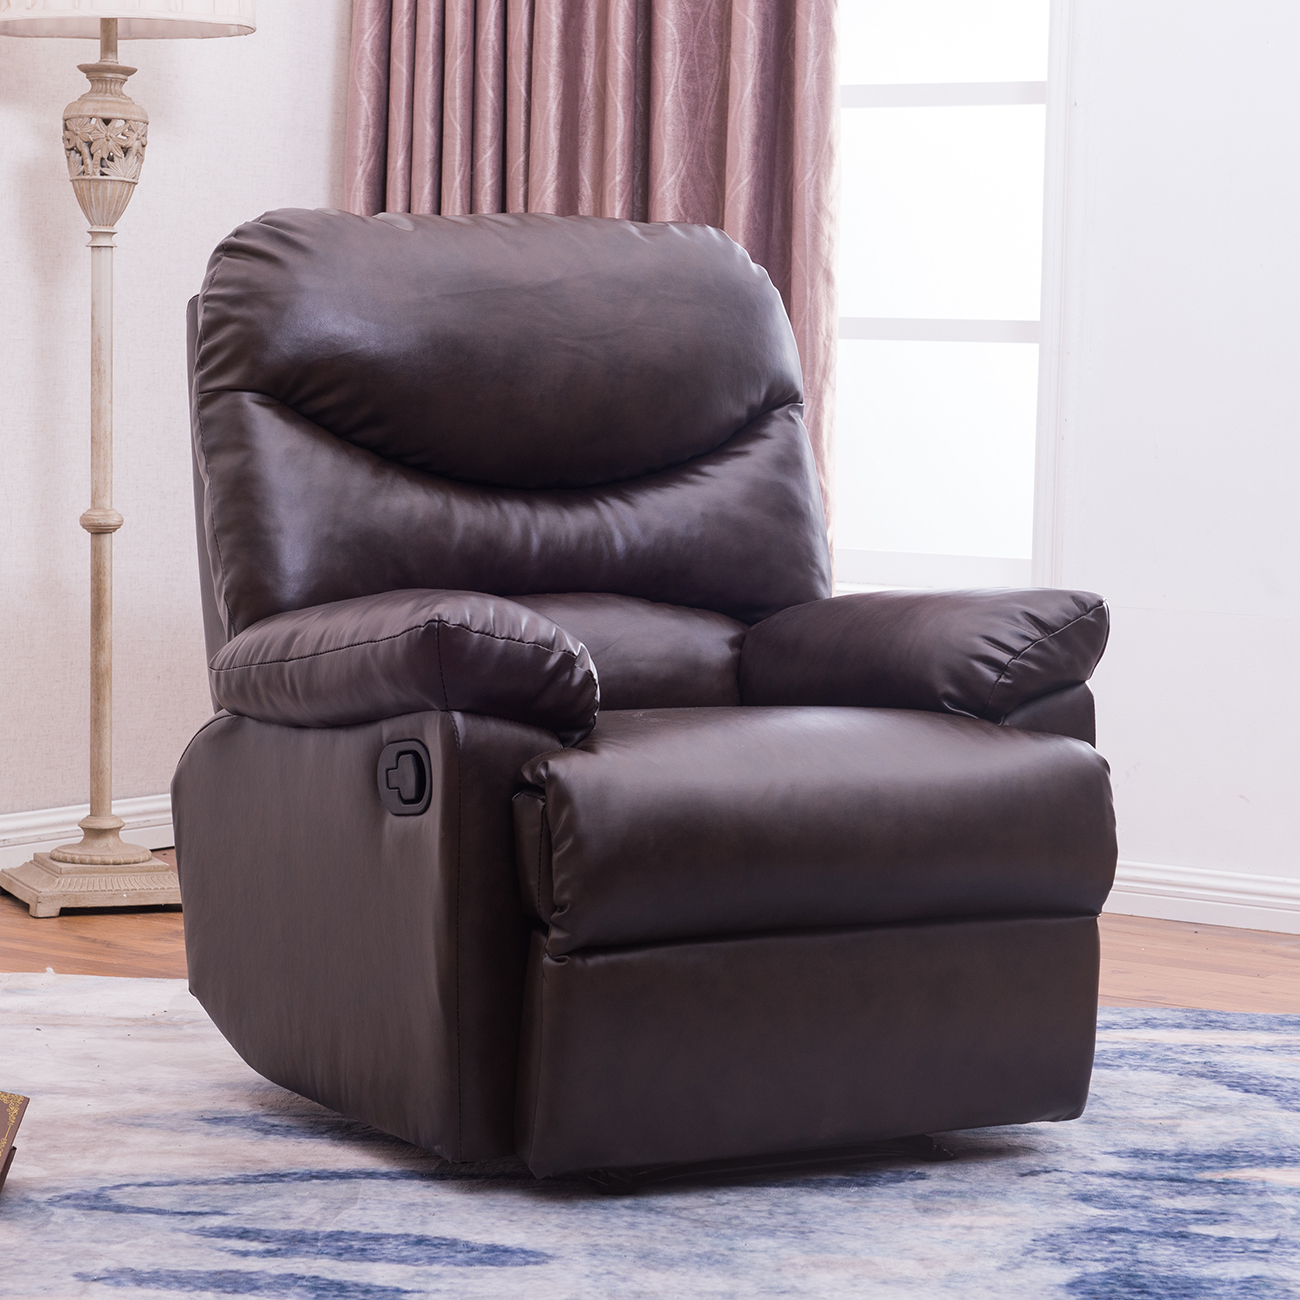 Leather Lounge Belleze Recliner Living Room Chair Faux Leather Lounge Padded Armrest Brown